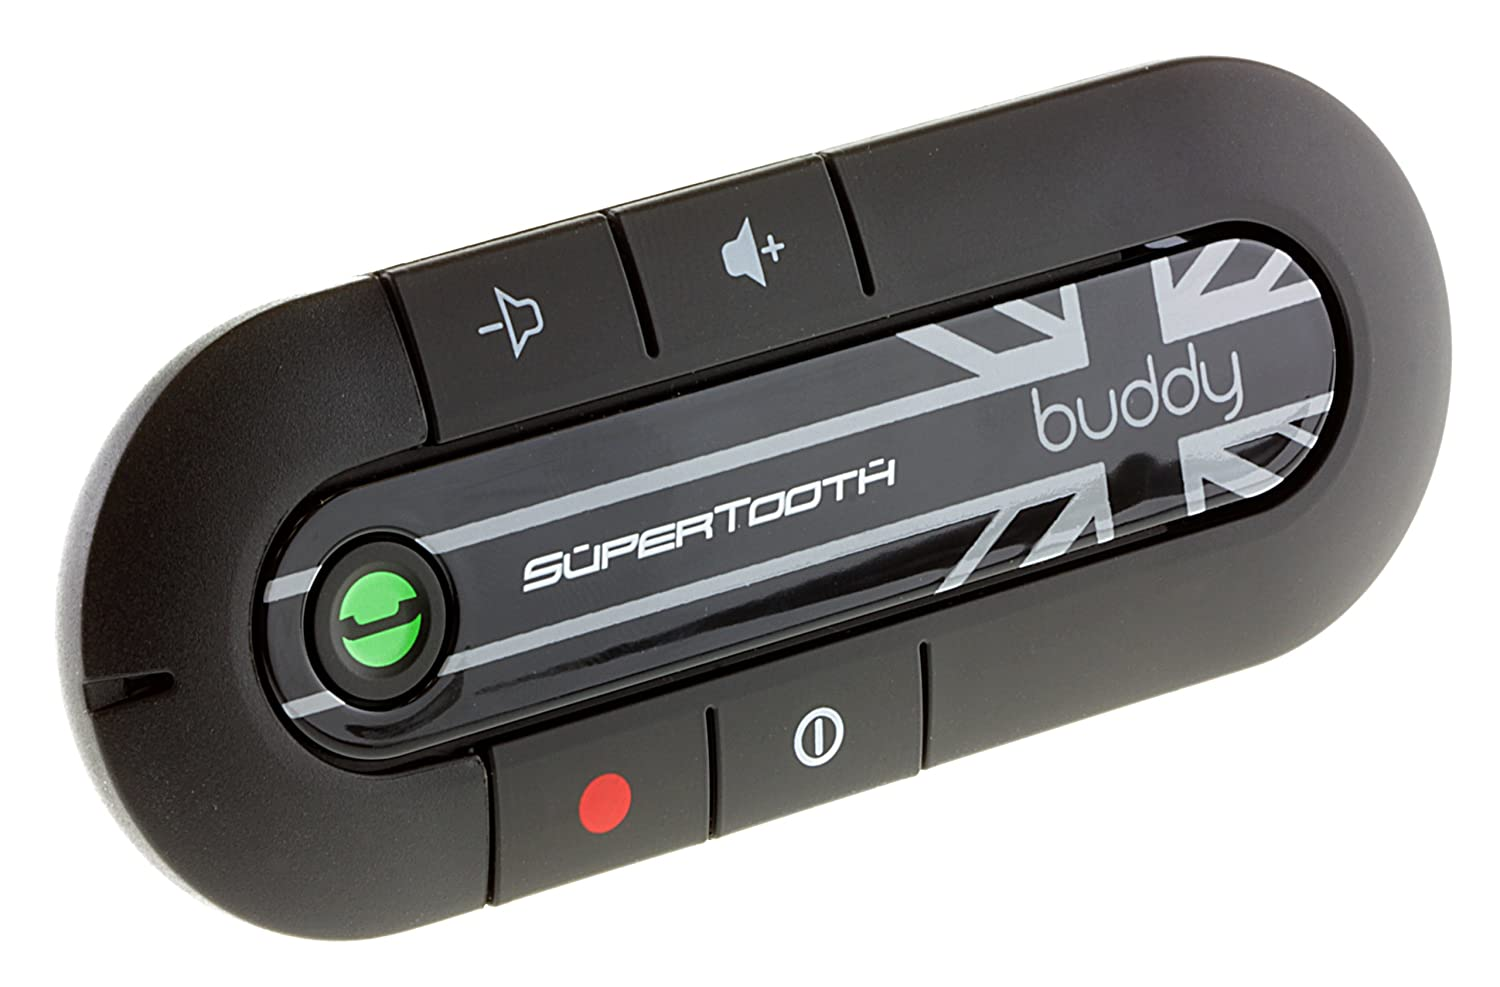 【2018?新作】 SuperTooth B000B9UQTU Buddy Kit Handsfree Bluetooth Visor Car SuperTooth Kit - Union Jack B000B9UQTU, 大館市:84d03d17 --- egreensolutions.ca